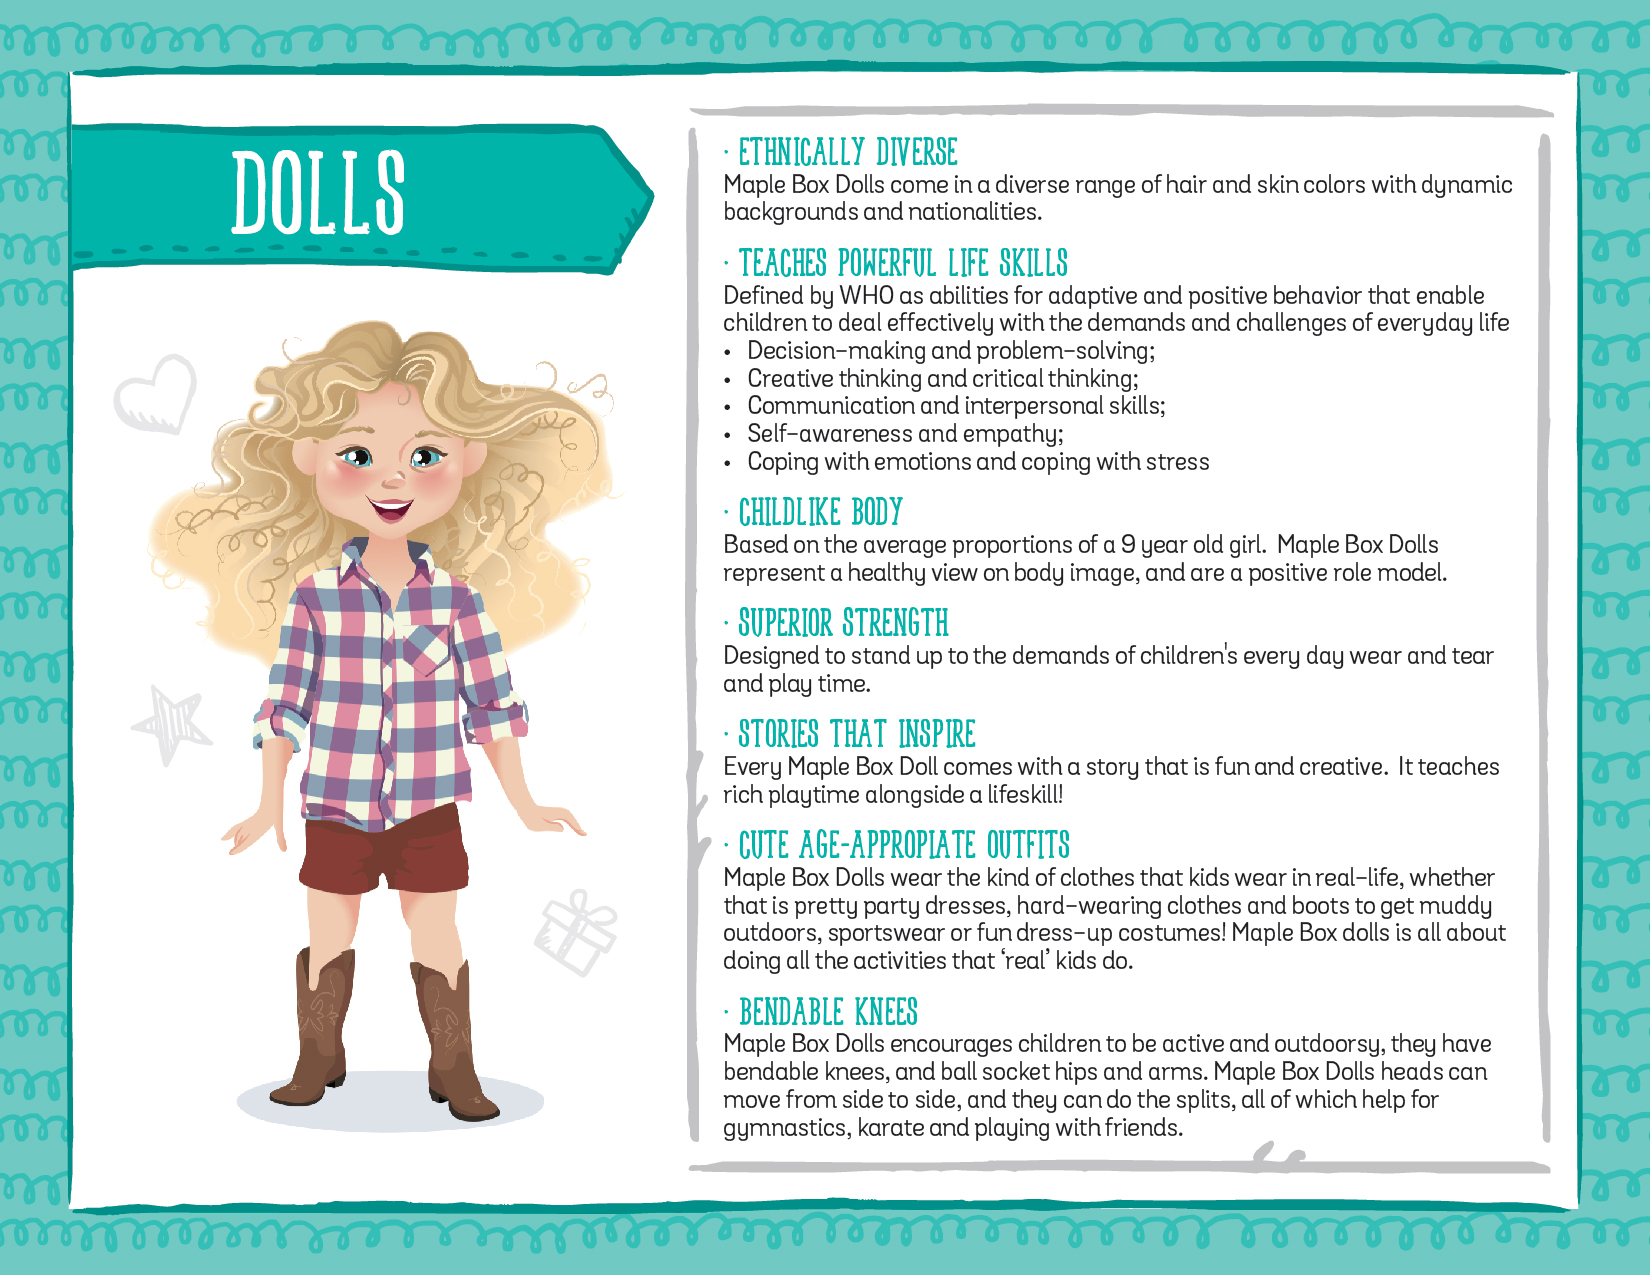 maple box dolls seizes opportunity to make parents lives easier about the dolls